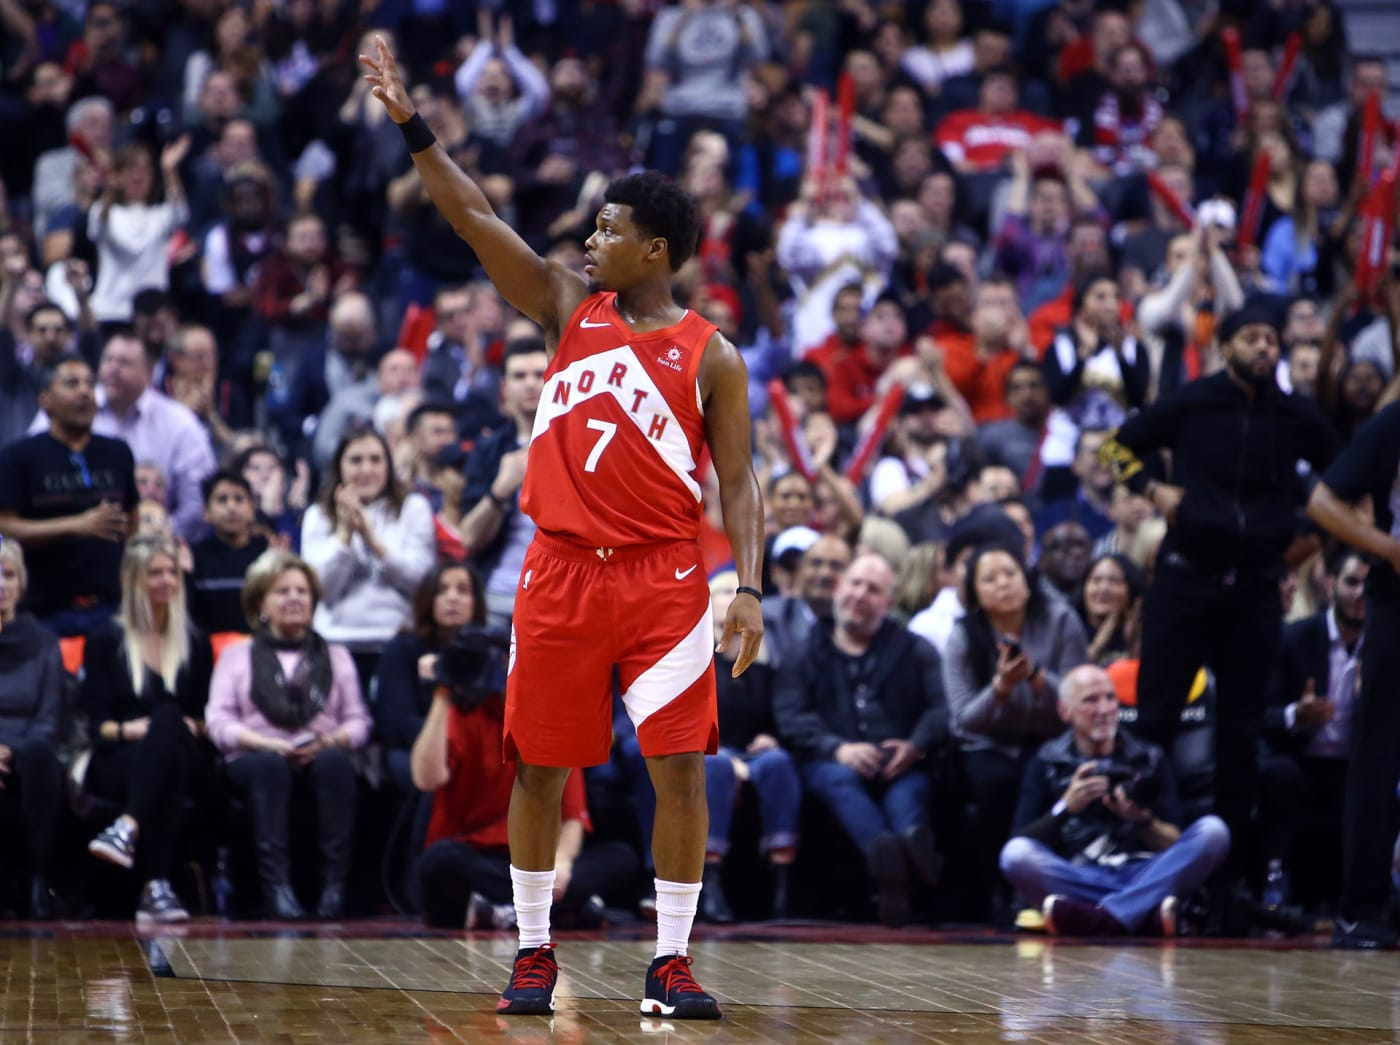 Kyle Lowry waves at fans at Toronto's Scotiabank Arena